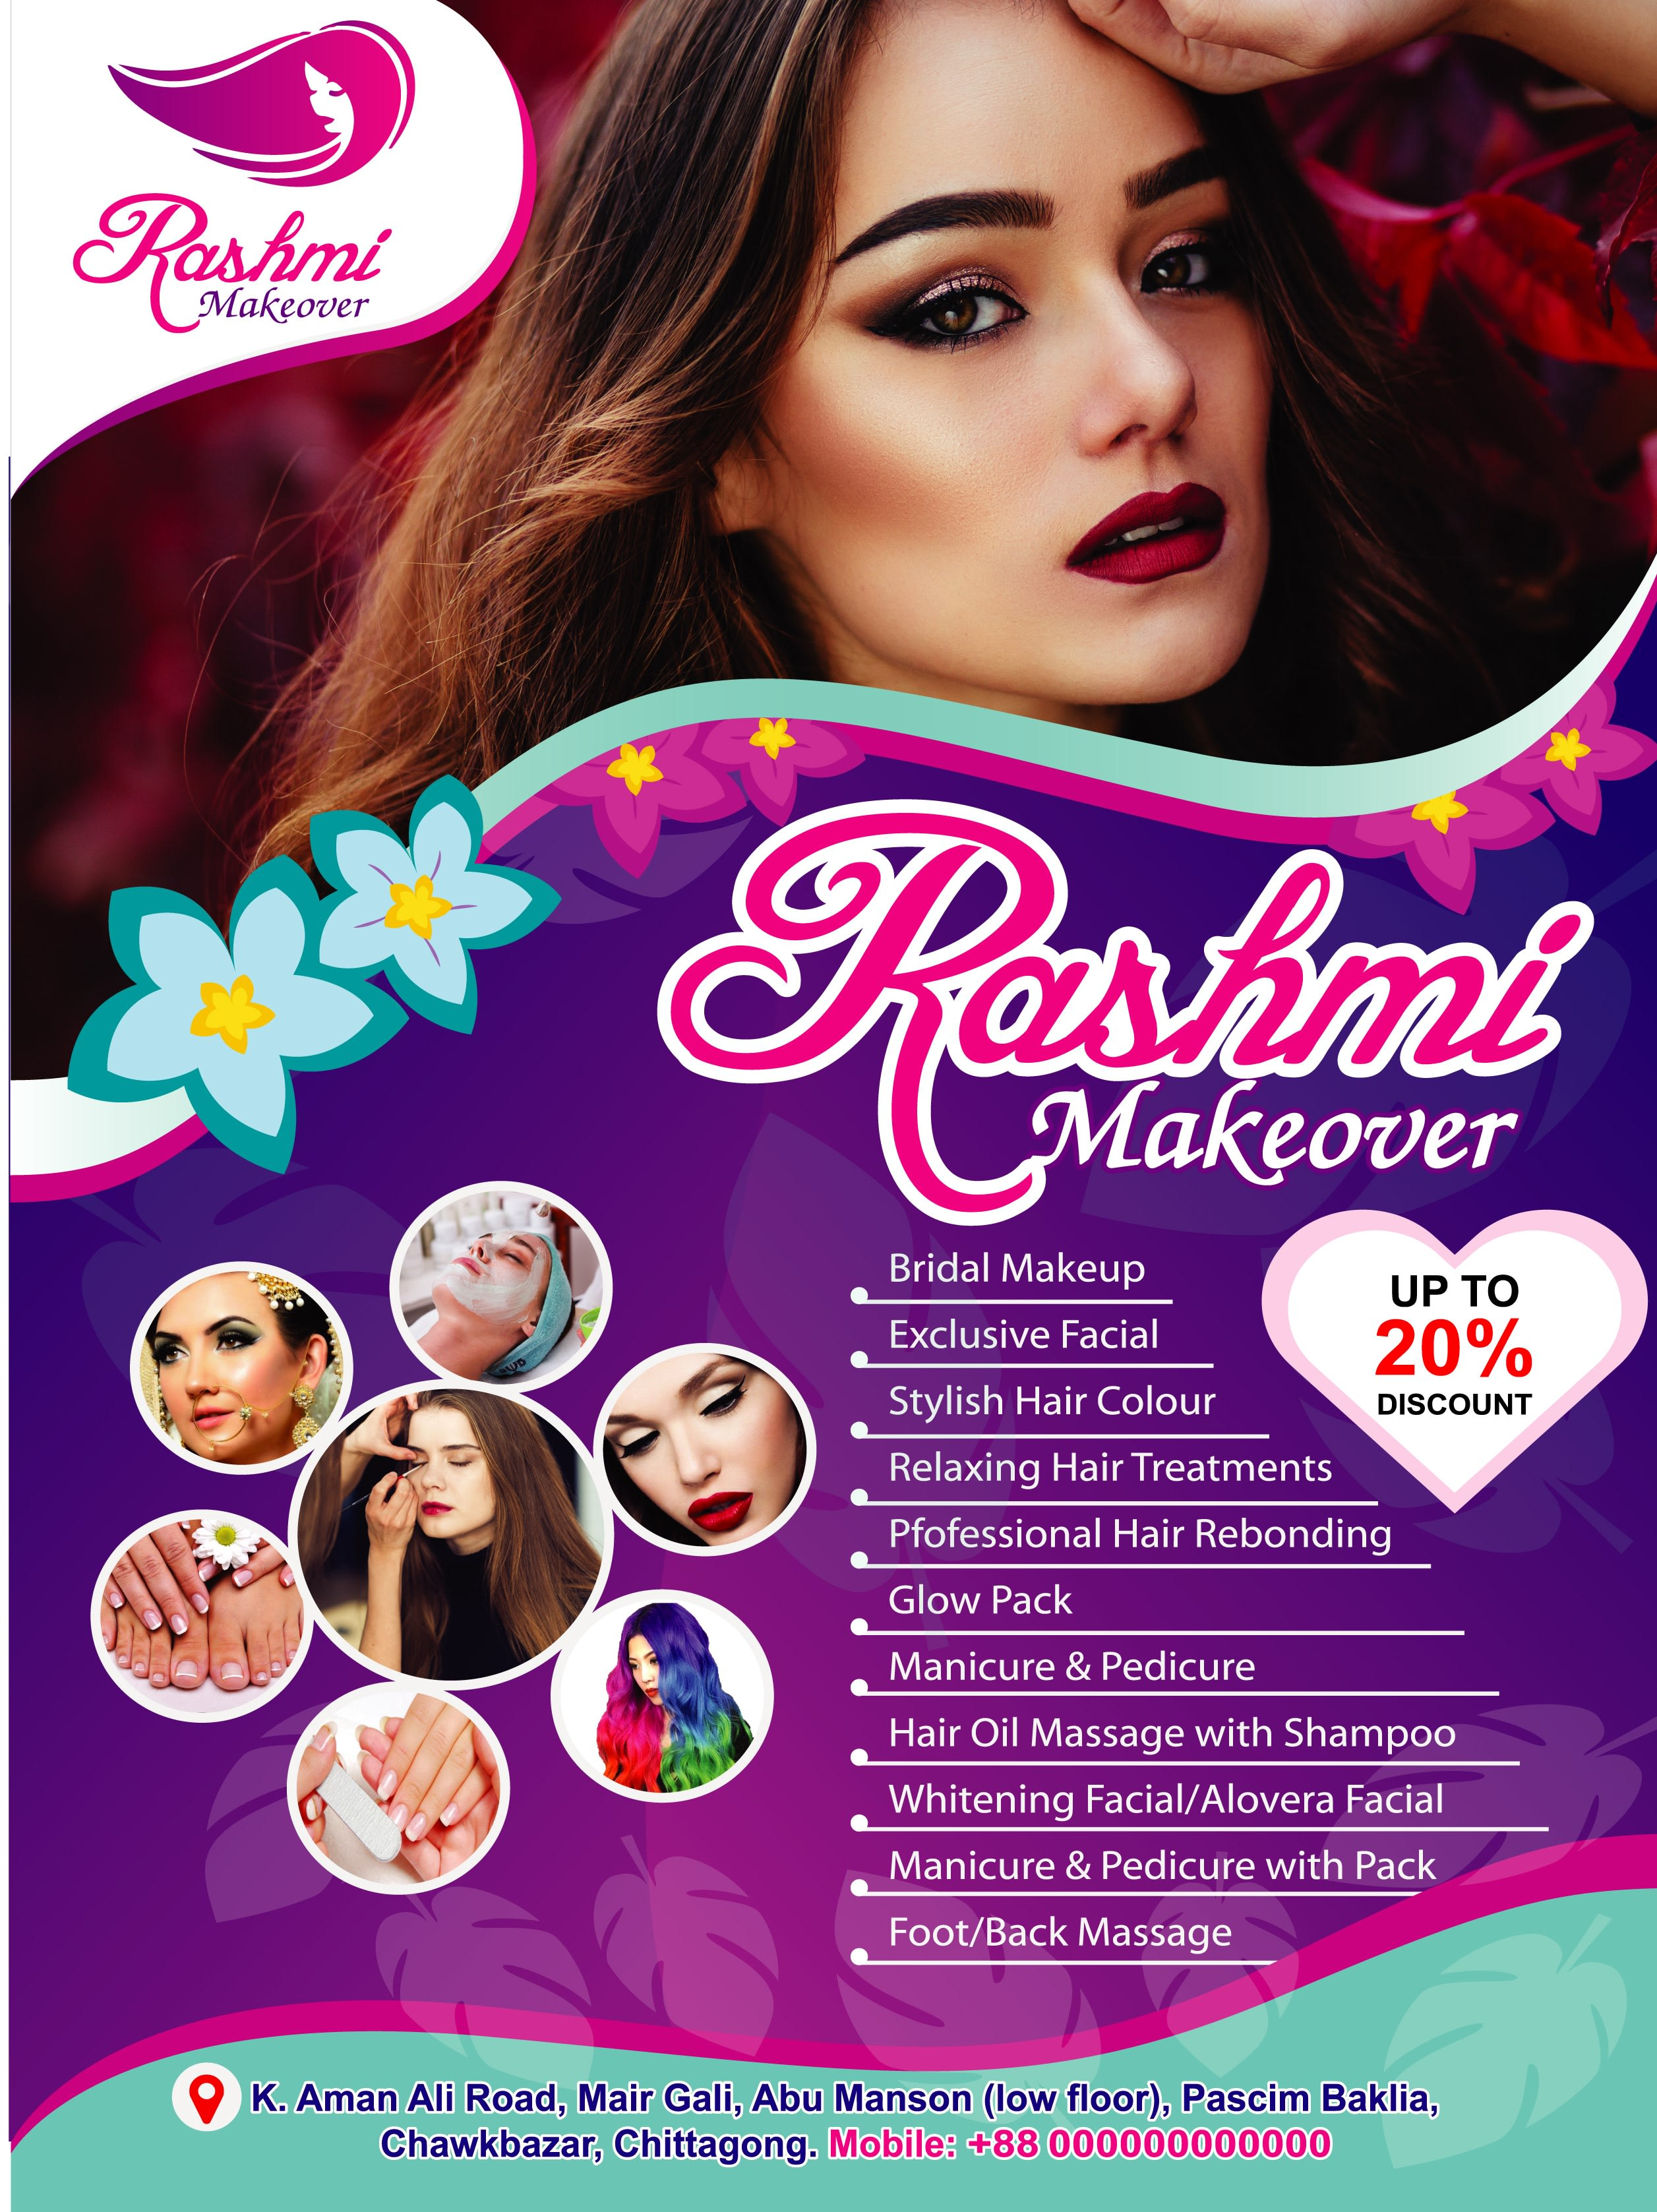 Make Beauty Salon Flyer And Brochure Design Within 24 Hours By Mdsalman905